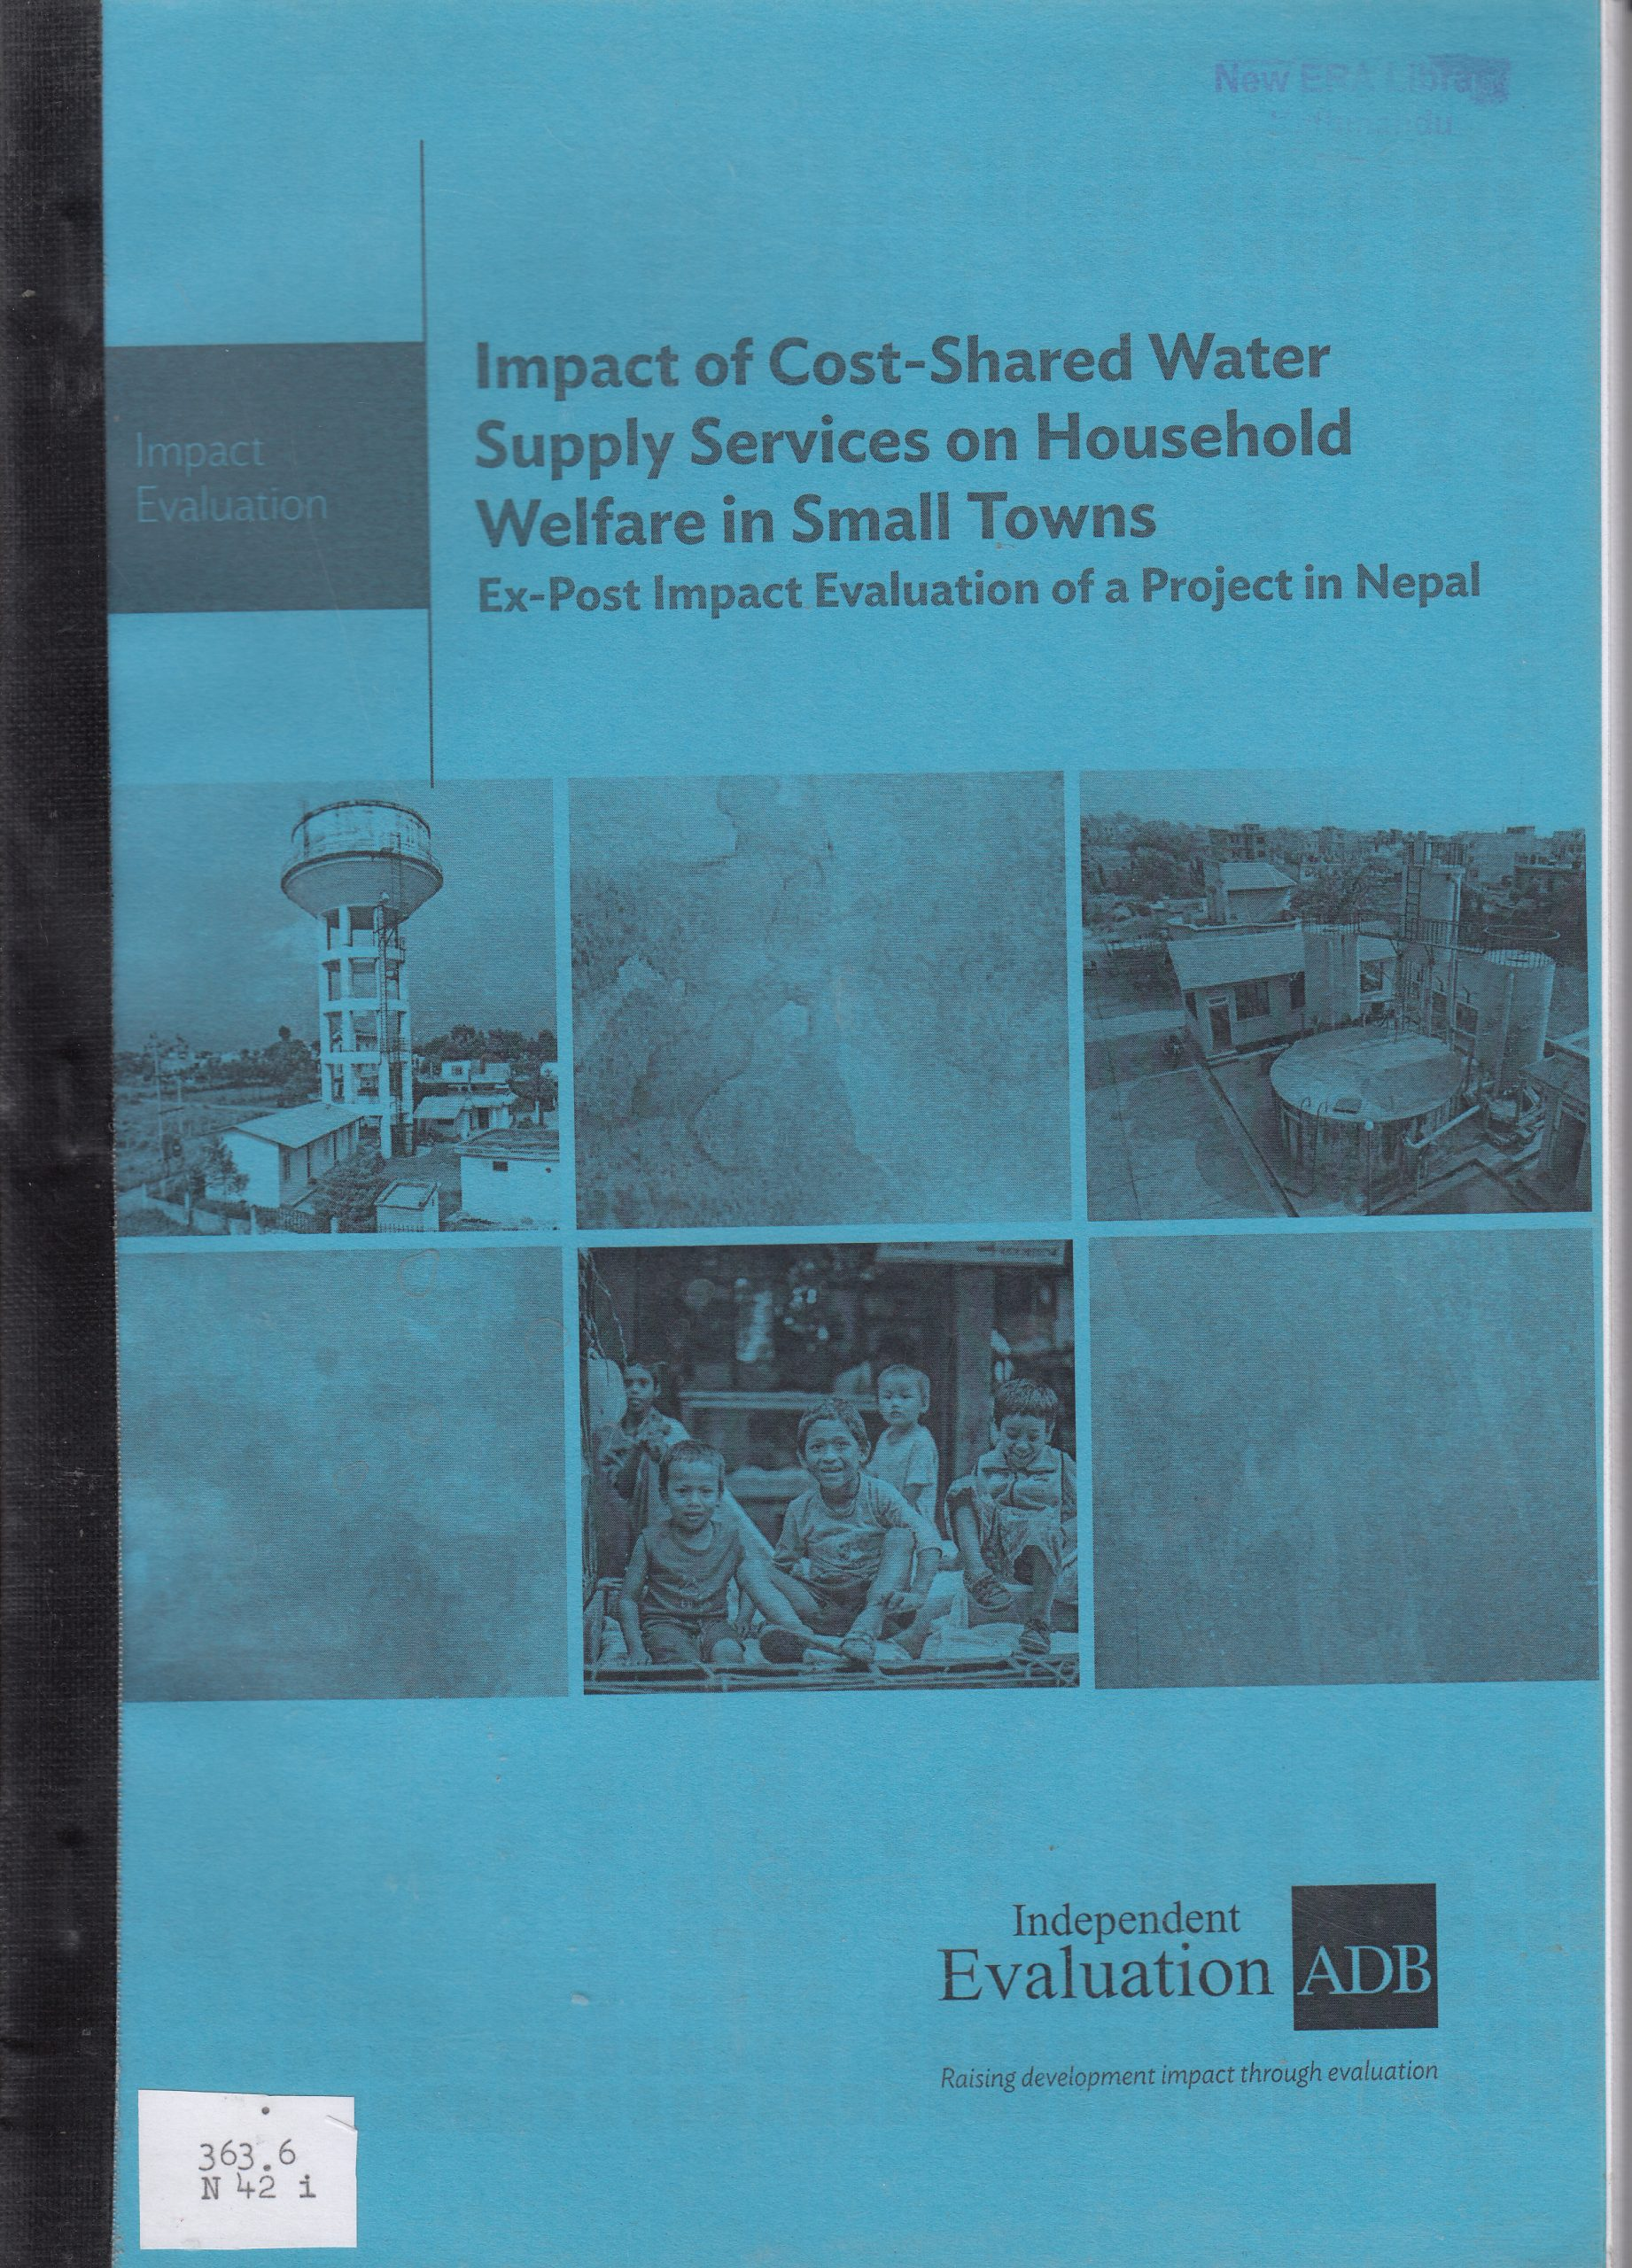 Impact of Cost-Shared Water Supply Services on Household Welfare in Small Towns: Ex-Post Impact Evaluation of a Project in Nepal